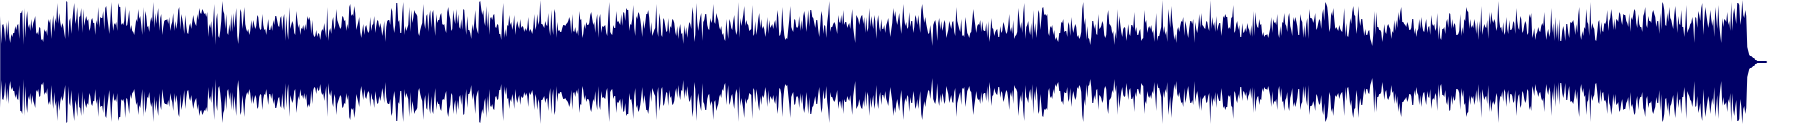 waveform of track #76663